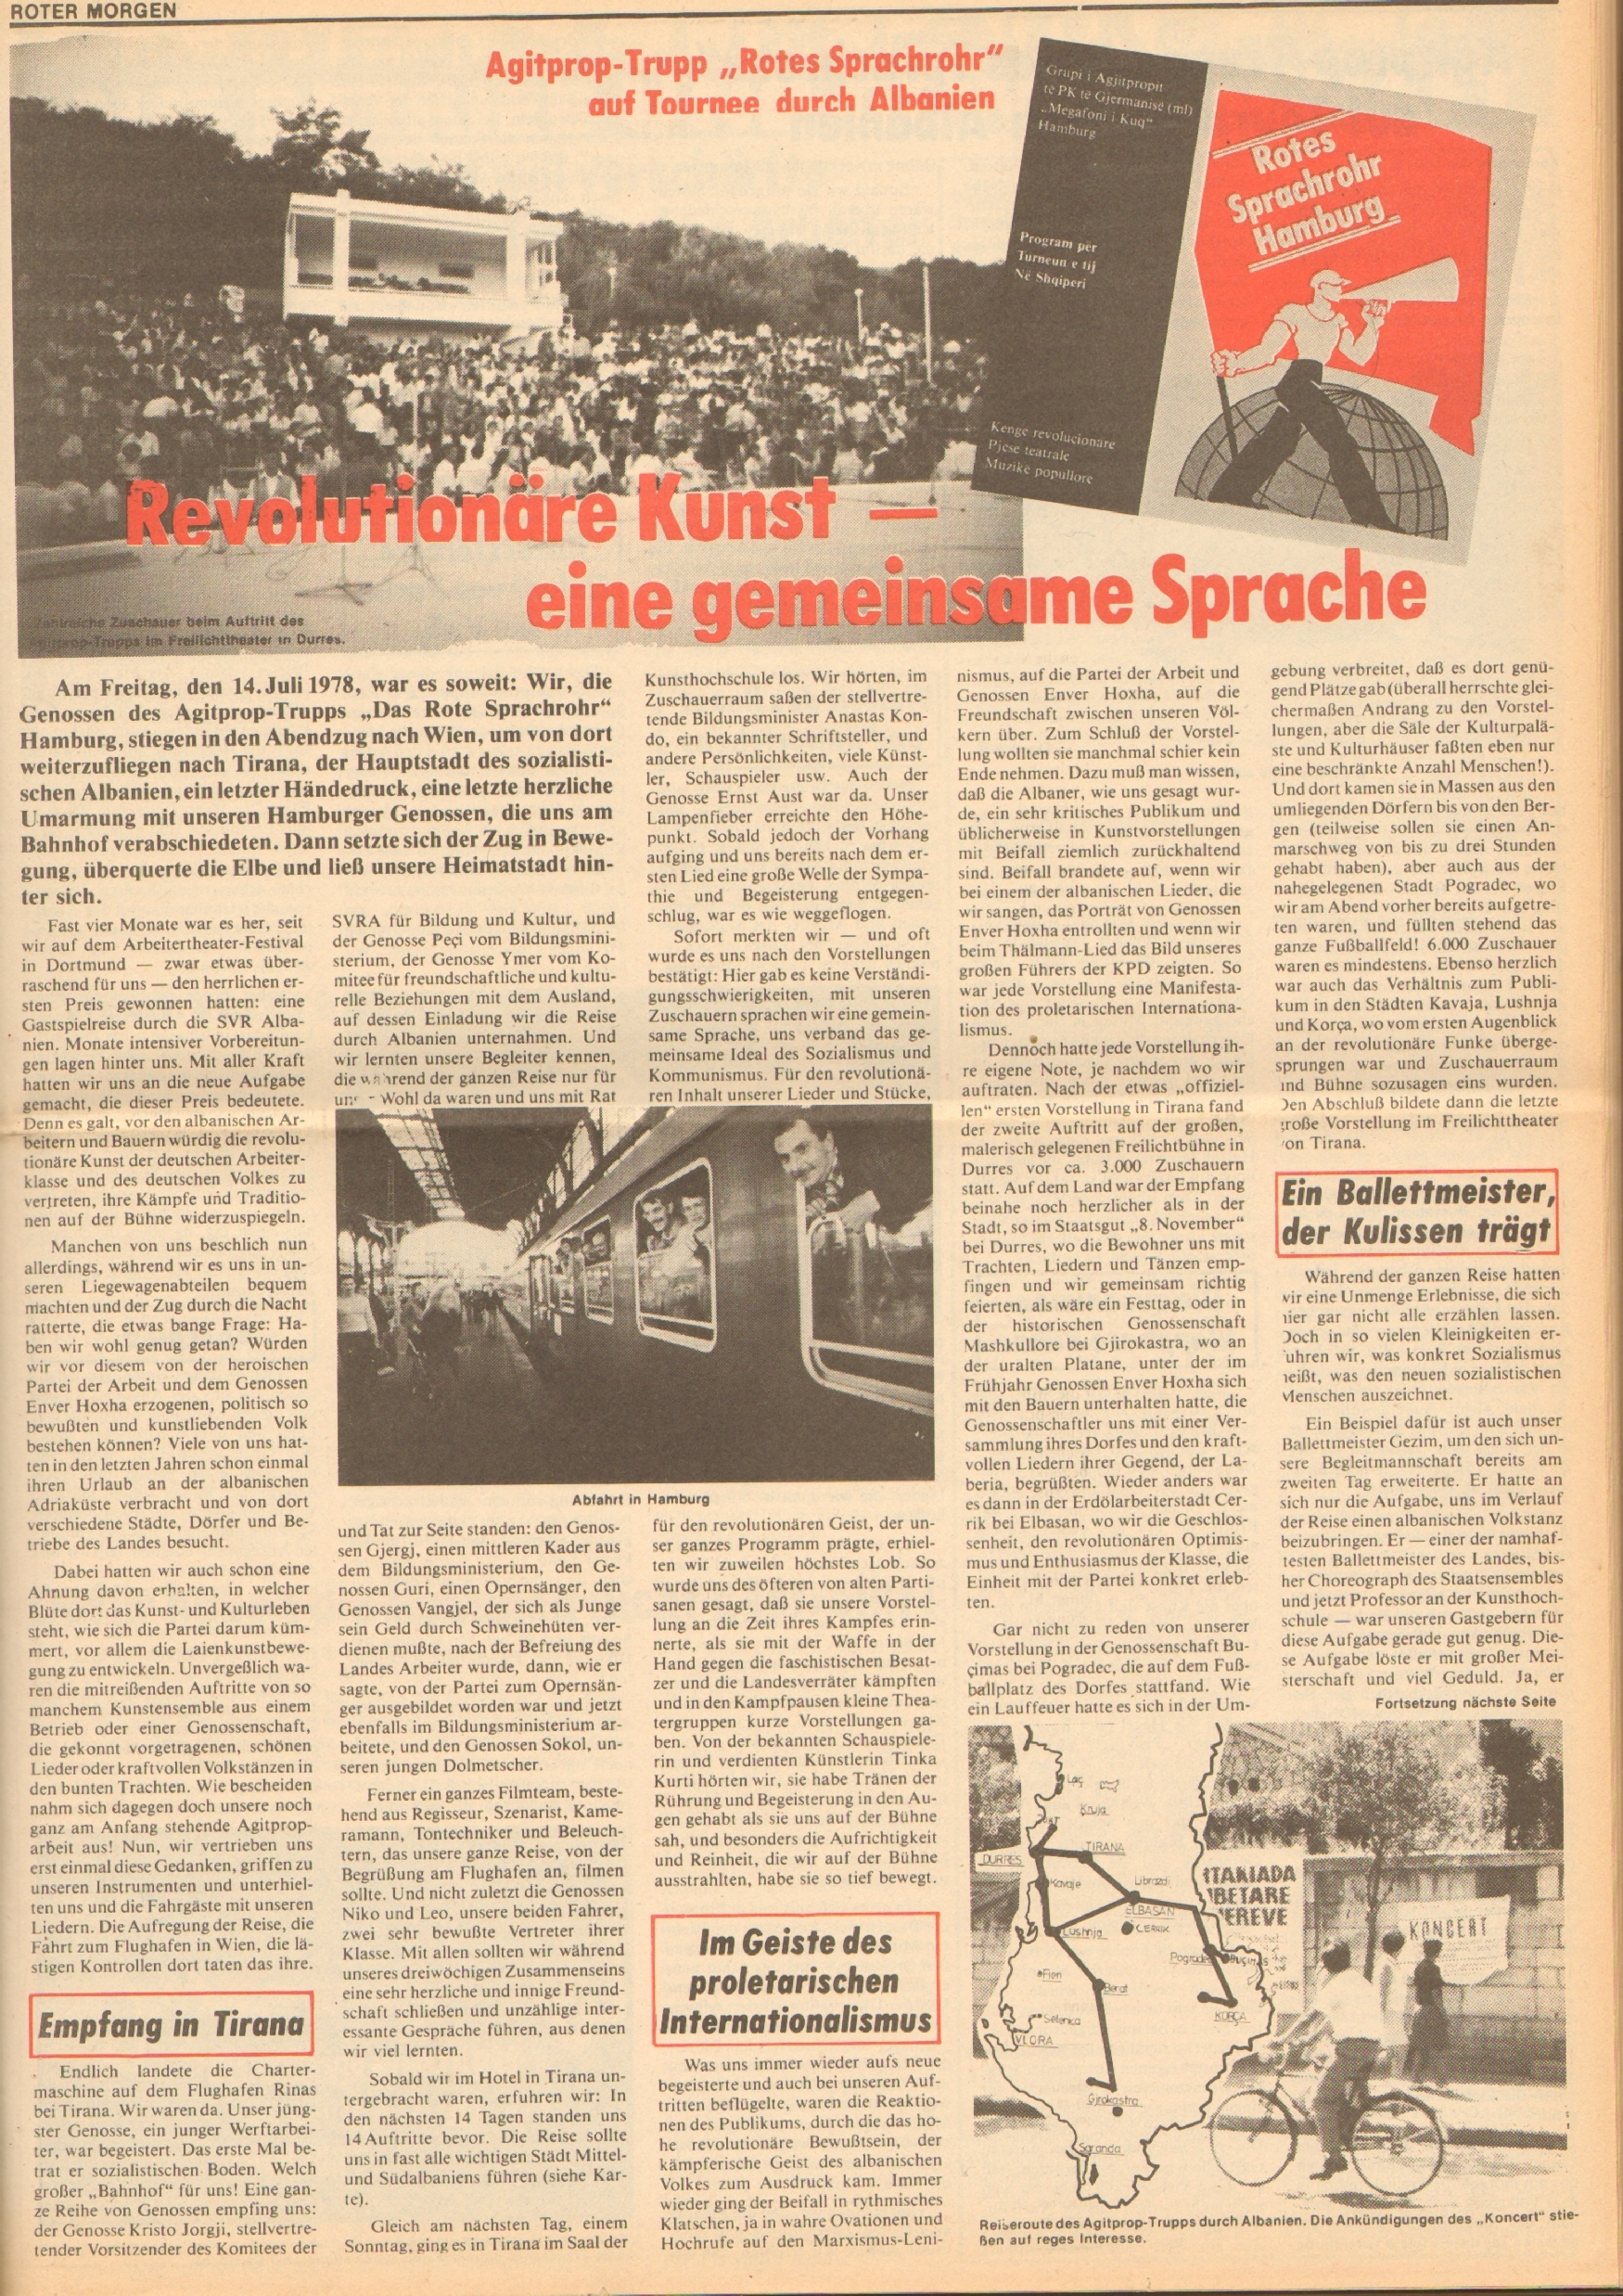 Roter Morgen, 12. Jg., 18. August 1978, Nr. 33, Seite 3